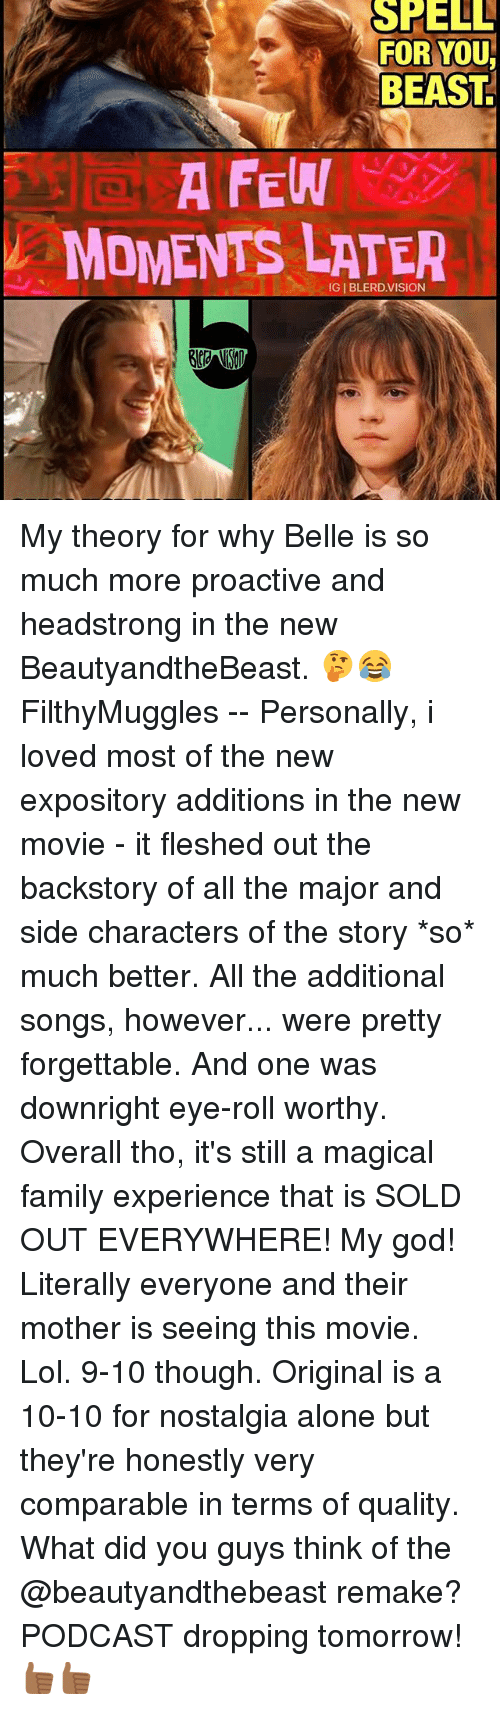 Eyes Rolling: SHELL  FOR YOU  BEAST  A FEW  MOMENTS LATER My theory for why Belle is so much more proactive and headstrong in the new BeautyandtheBeast. 🤔😂 FilthyMuggles -- Personally, i loved most of the new expository additions in the new movie - it fleshed out the backstory of all the major and side characters of the story *so* much better. All the additional songs, however... were pretty forgettable. And one was downright eye-roll worthy. Overall tho, it's still a magical family experience that is SOLD OUT EVERYWHERE! My god! Literally everyone and their mother is seeing this movie. Lol. 9-10 though. Original is a 10-10 for nostalgia alone but they're honestly very comparable in terms of quality. What did you guys think of the @beautyandthebeast remake? PODCAST dropping tomorrow! 👍🏾👍🏾